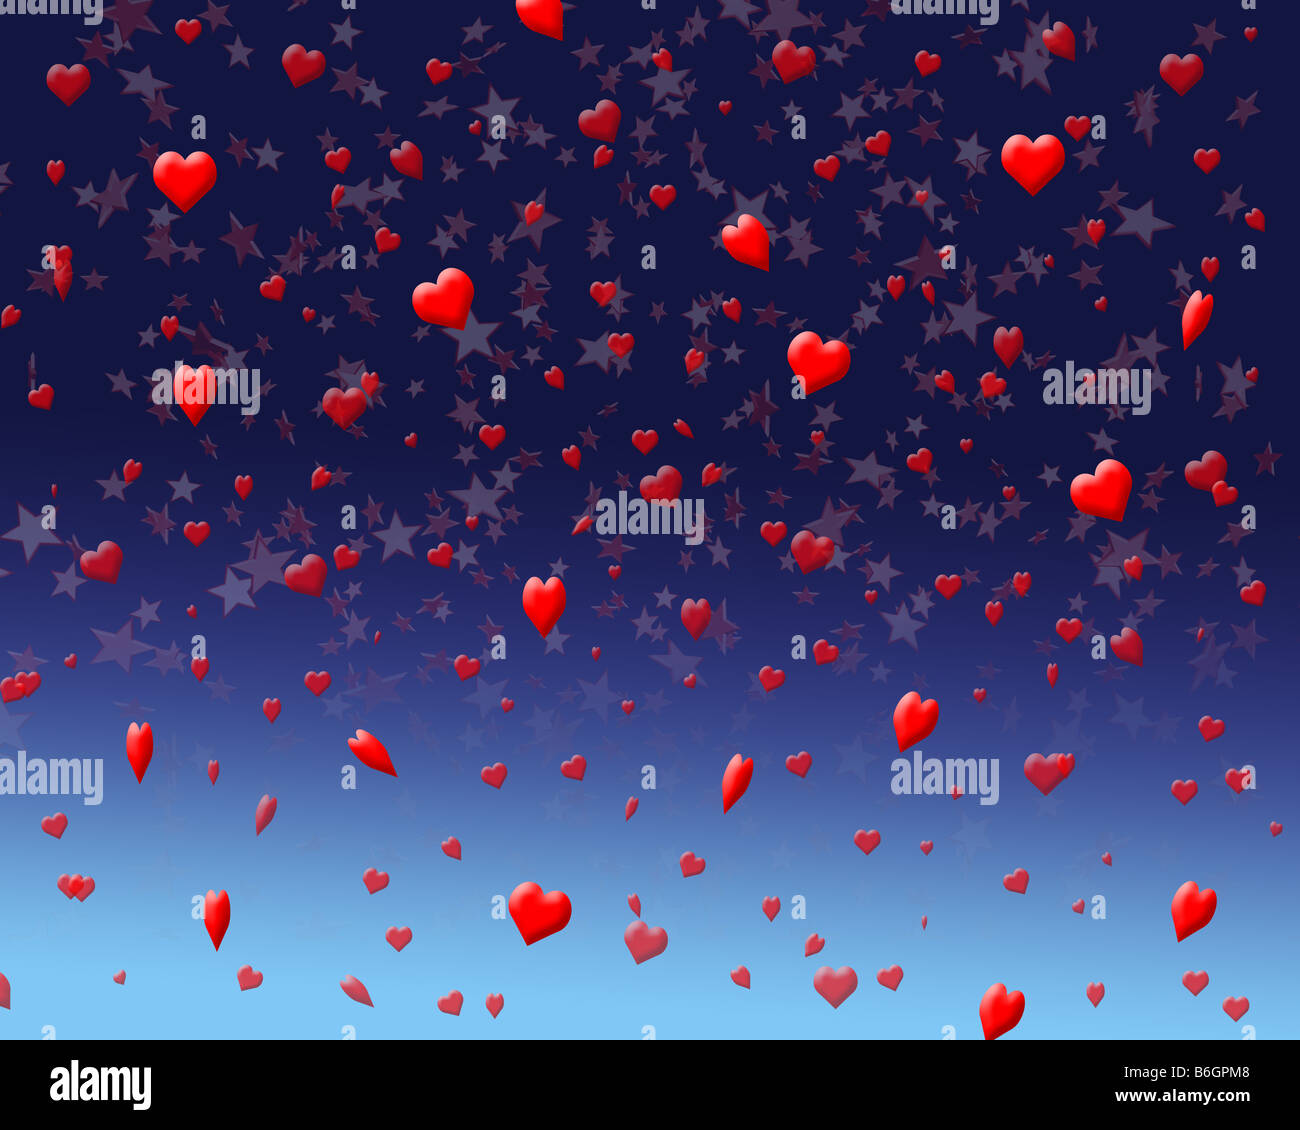 Illustration of a night time celebration with heart and star confetti - Stock Image